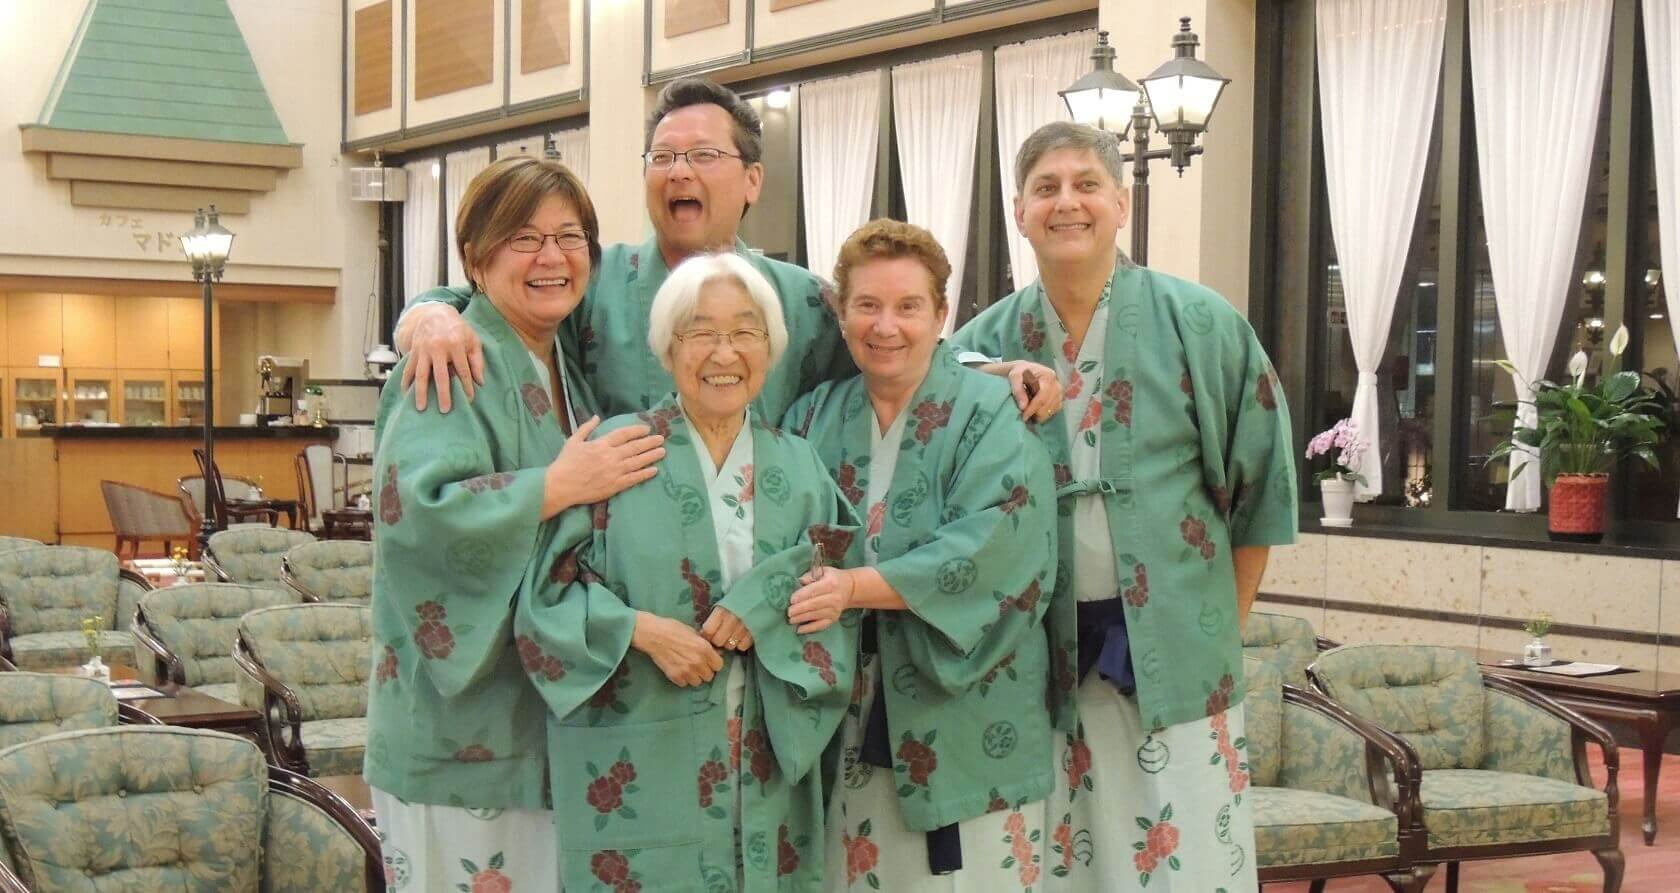 Guests in Yukatas at a Ryokan